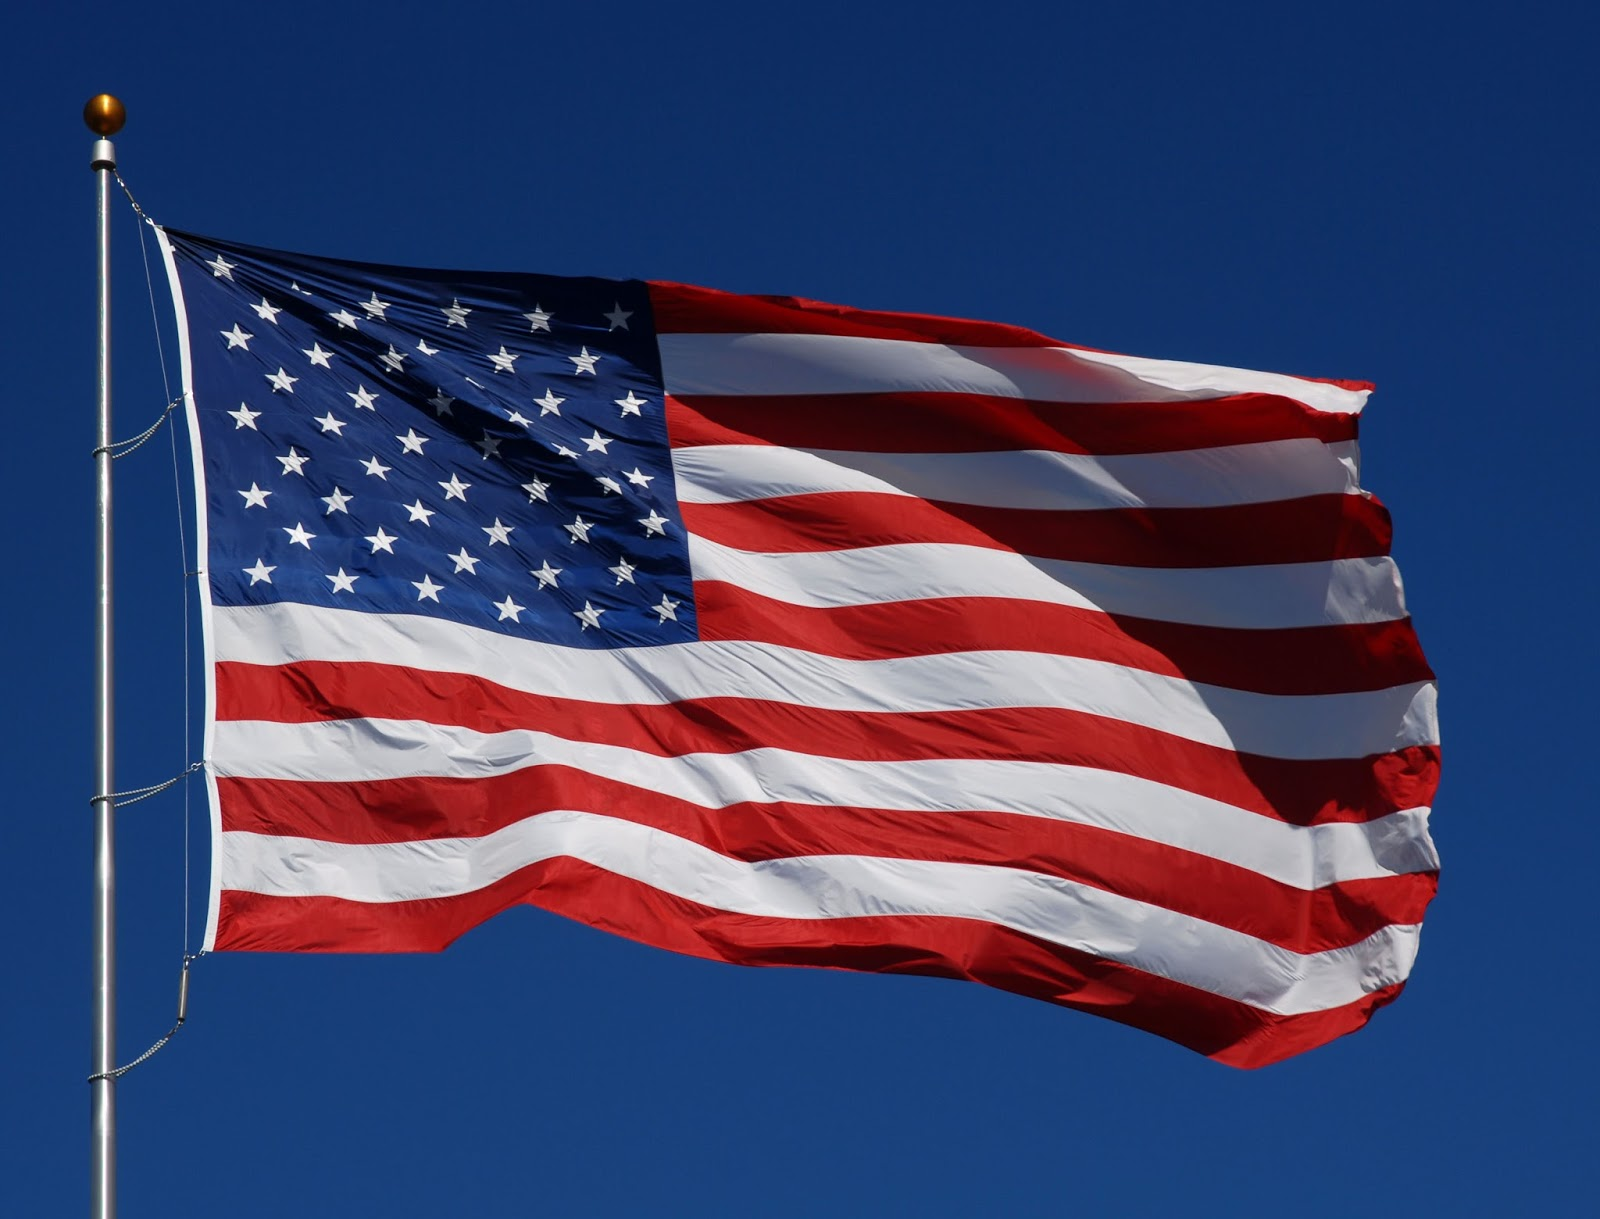 american flag hd wallpaper old american flag with black background 1600x1219